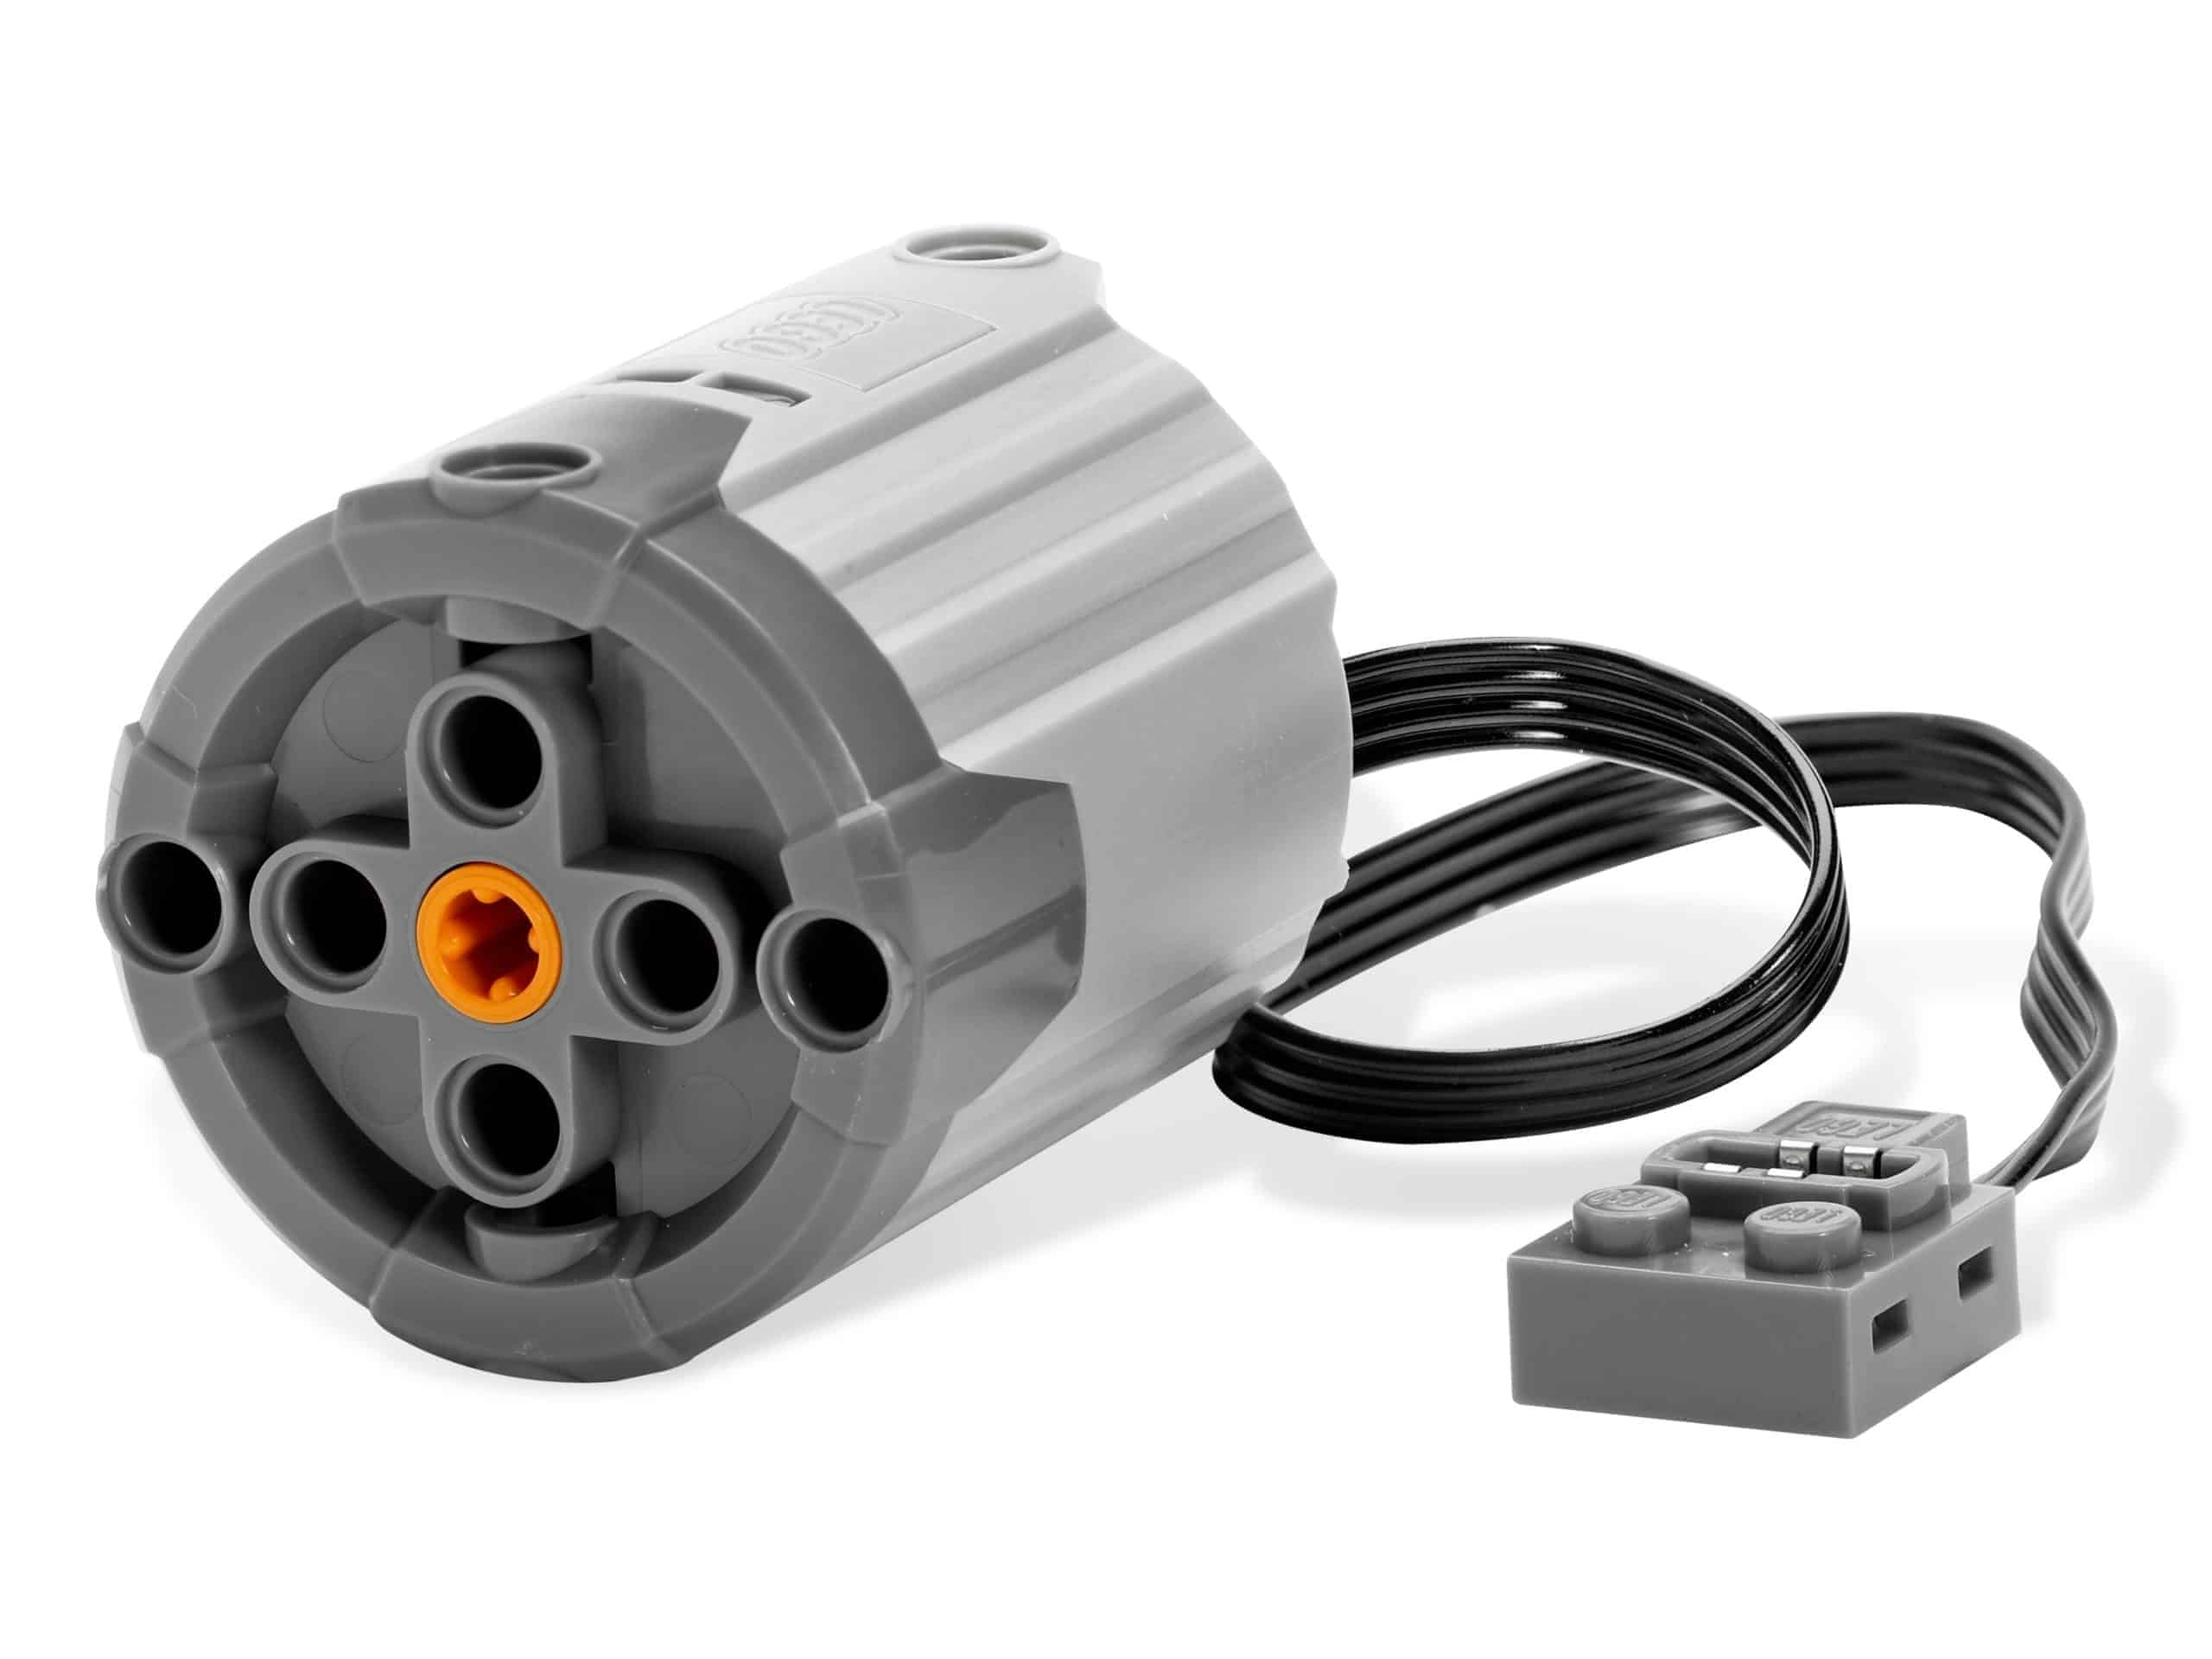 lego 8882 power functions xl motor scaled